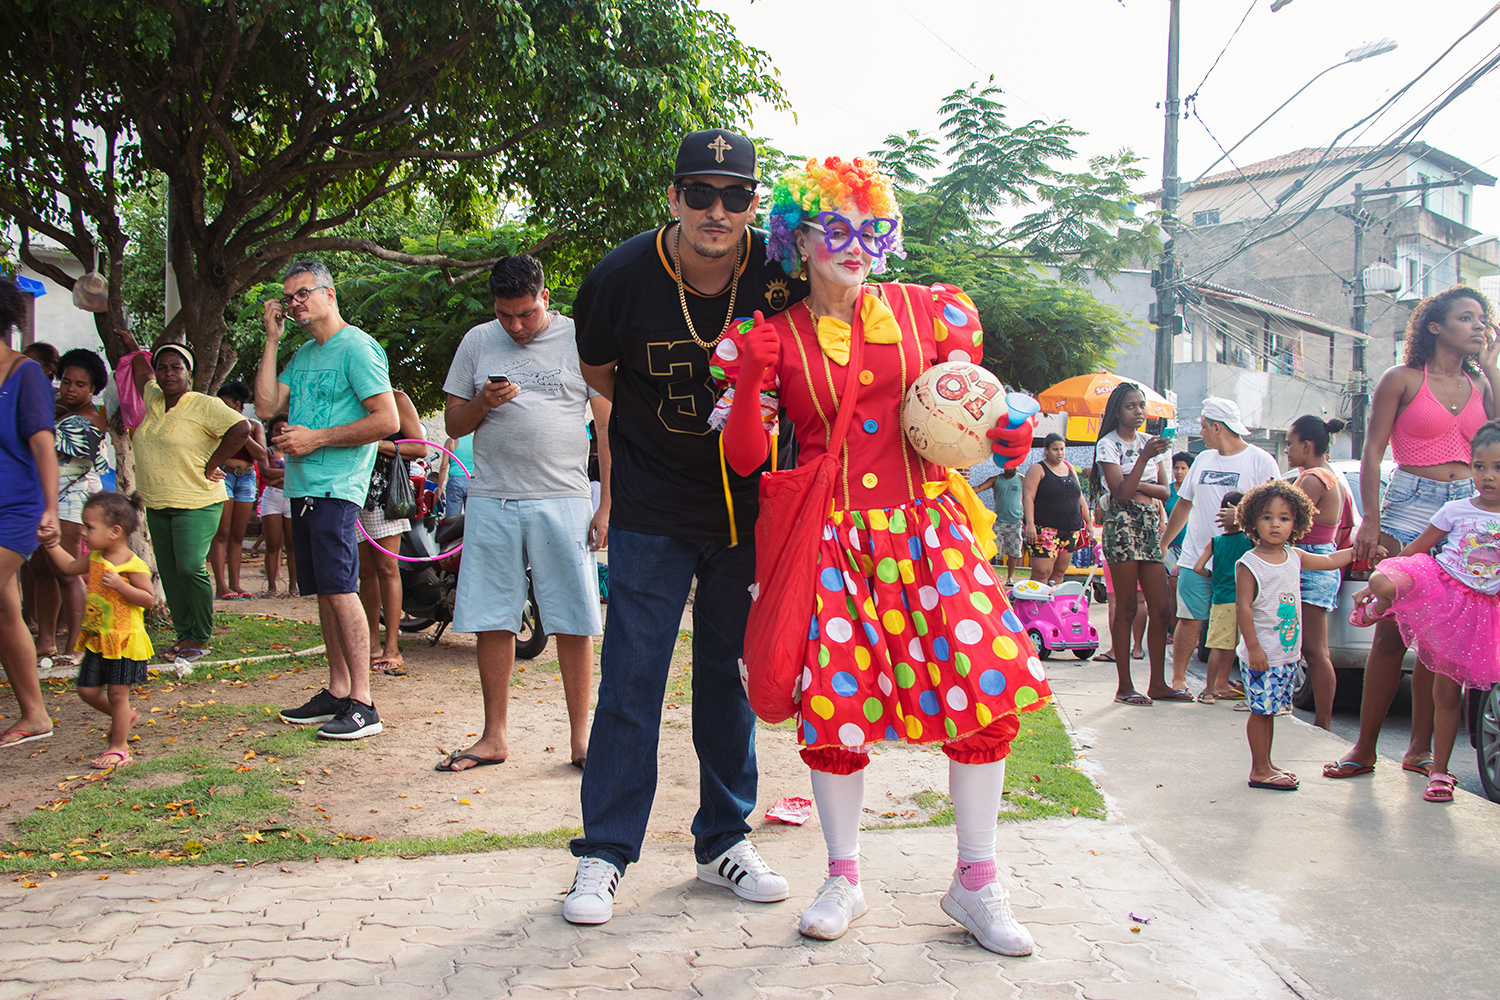 Brazilian Rap Star Kaos MC with the Clown at Kids Day in the Favela